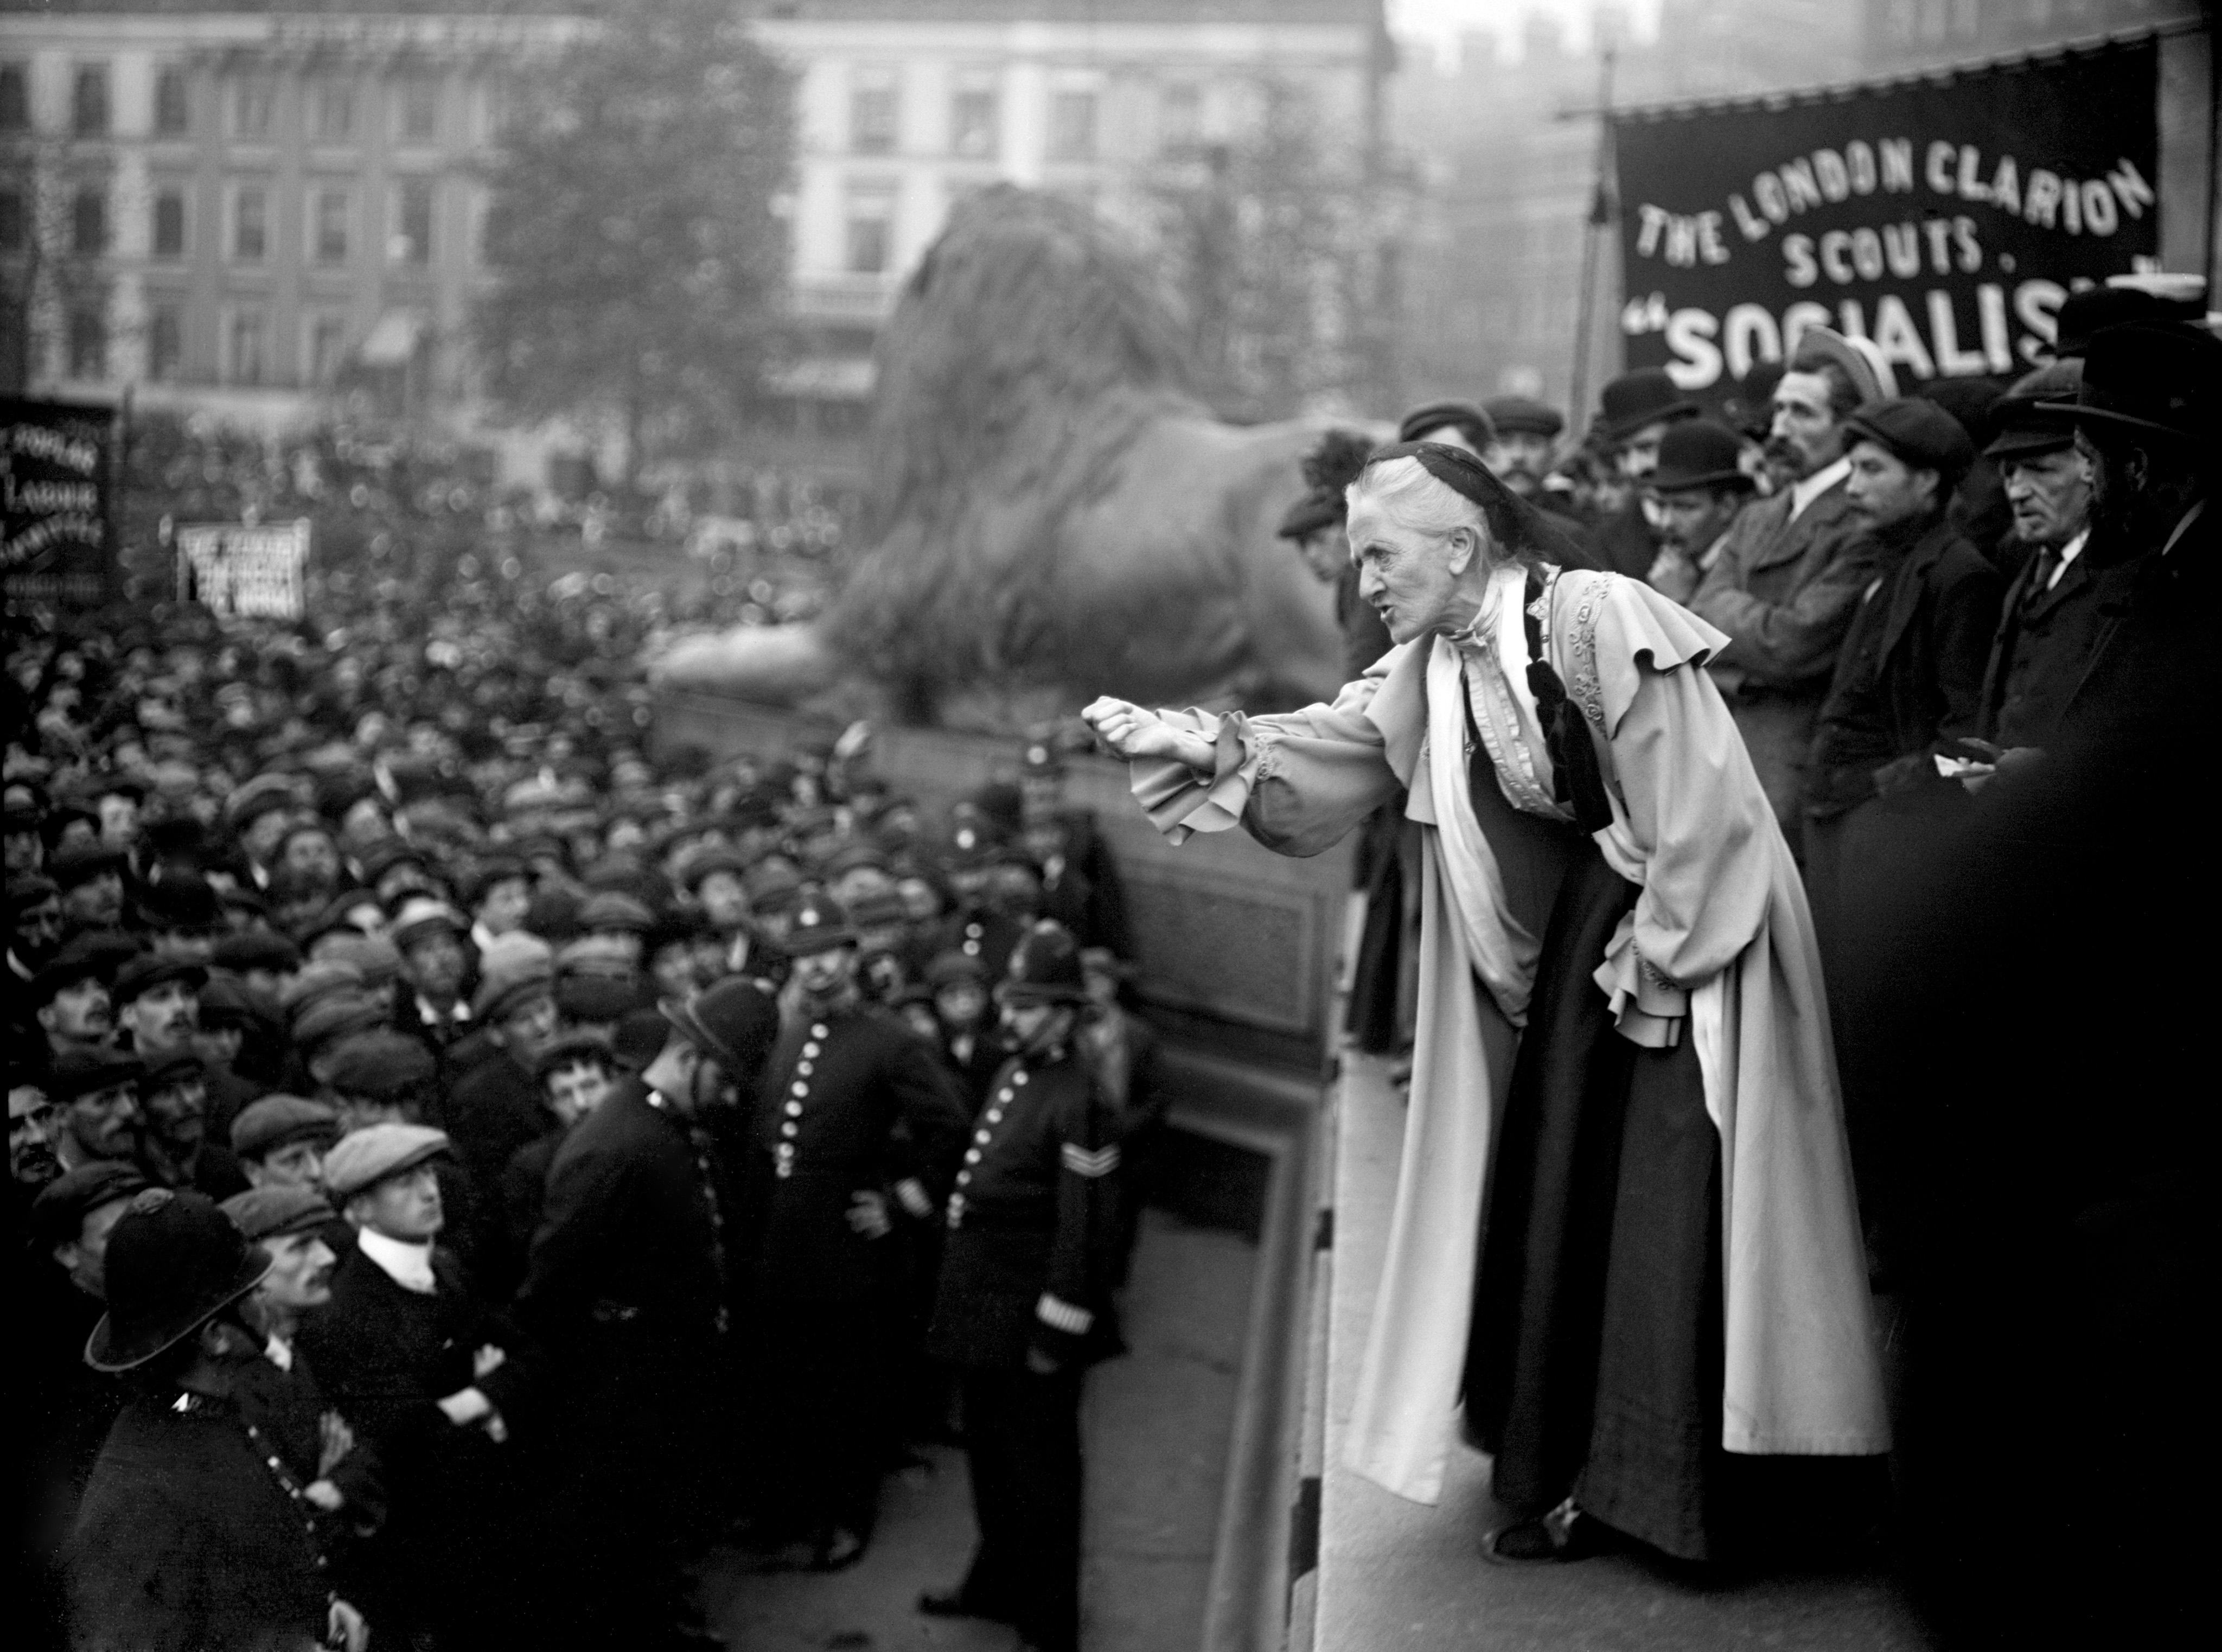 The 66 year old suffragette Charlotte Despard speaks to a crowd in Trafalgar Square. 1910.